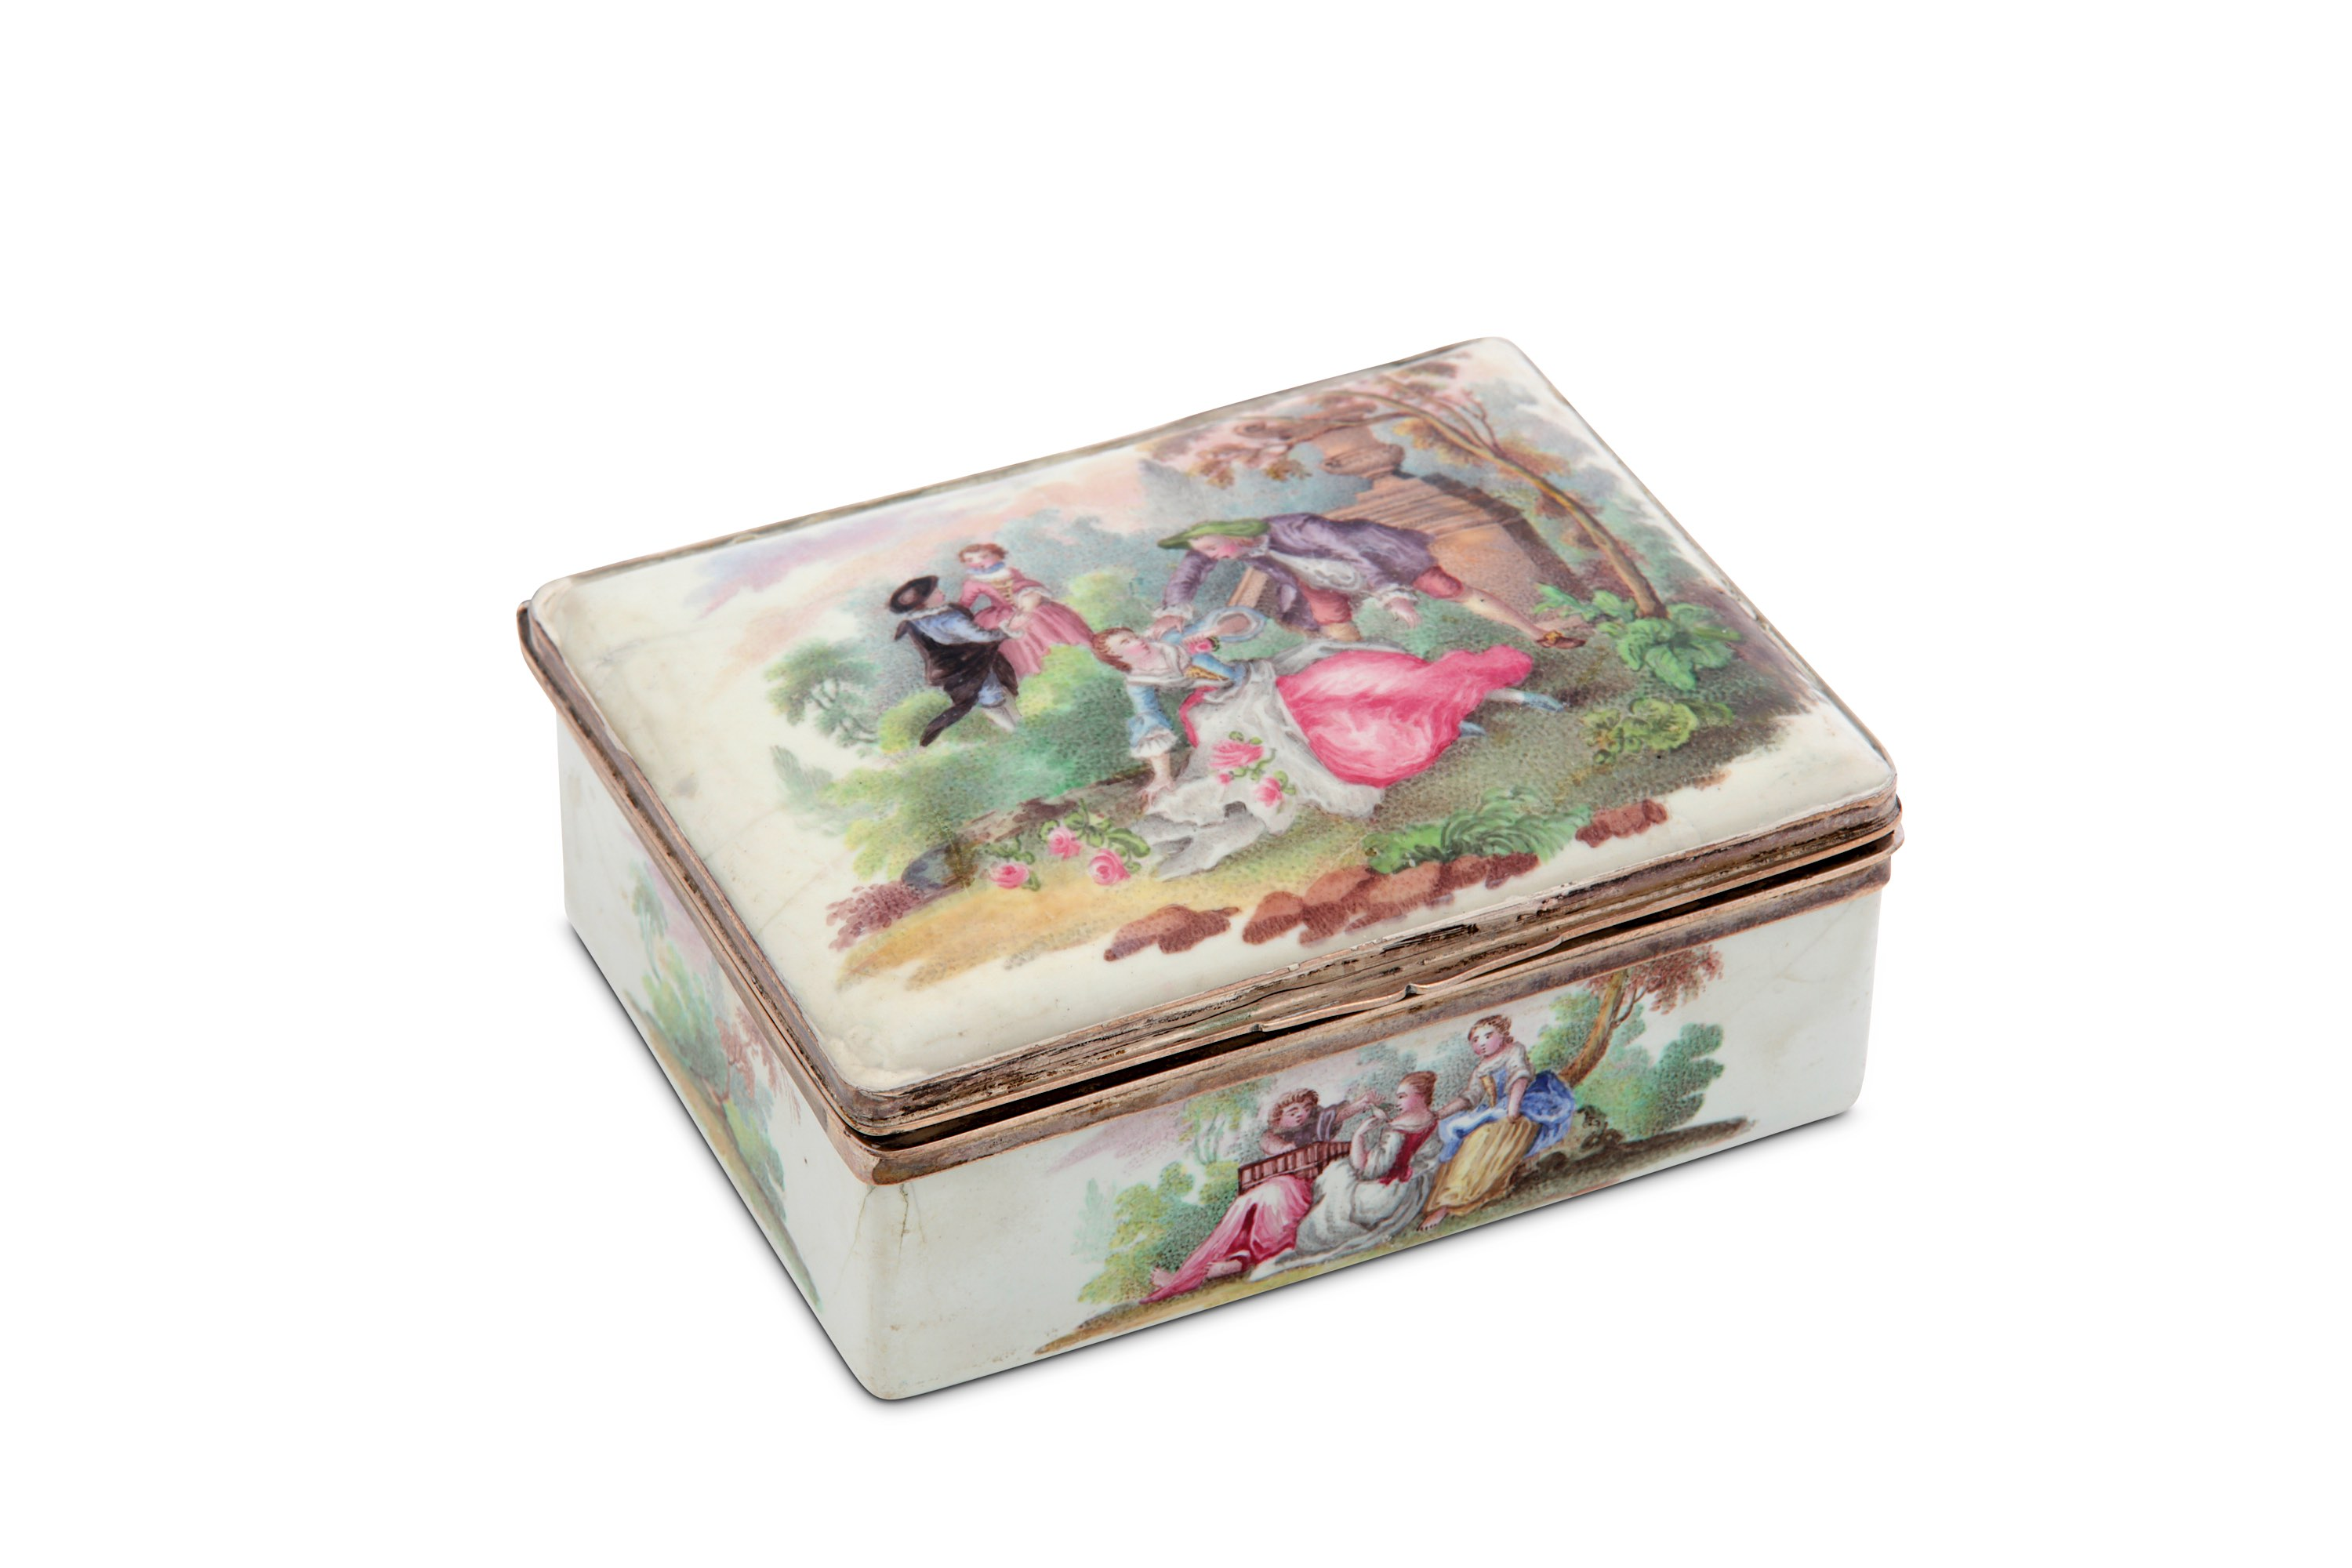 Lot 14 - A late 18th century Continental unmarked silver-mounted enamel snuff box, circa 1780